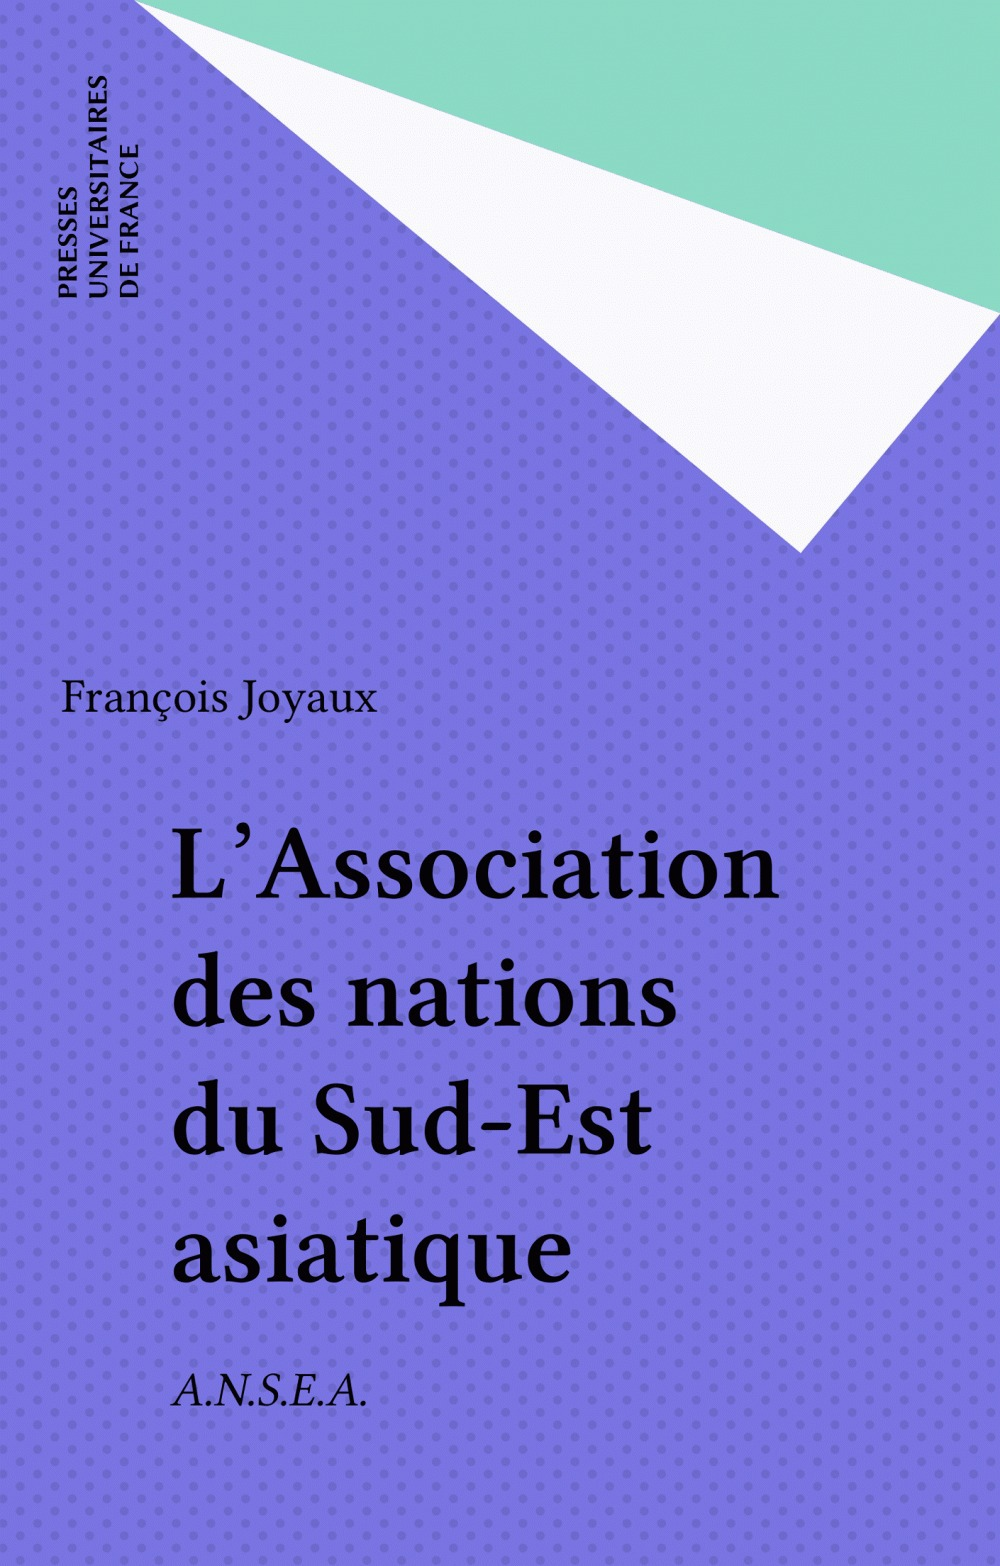 L'association des nations du Sud-Est asiatique A.N.S.E.A.